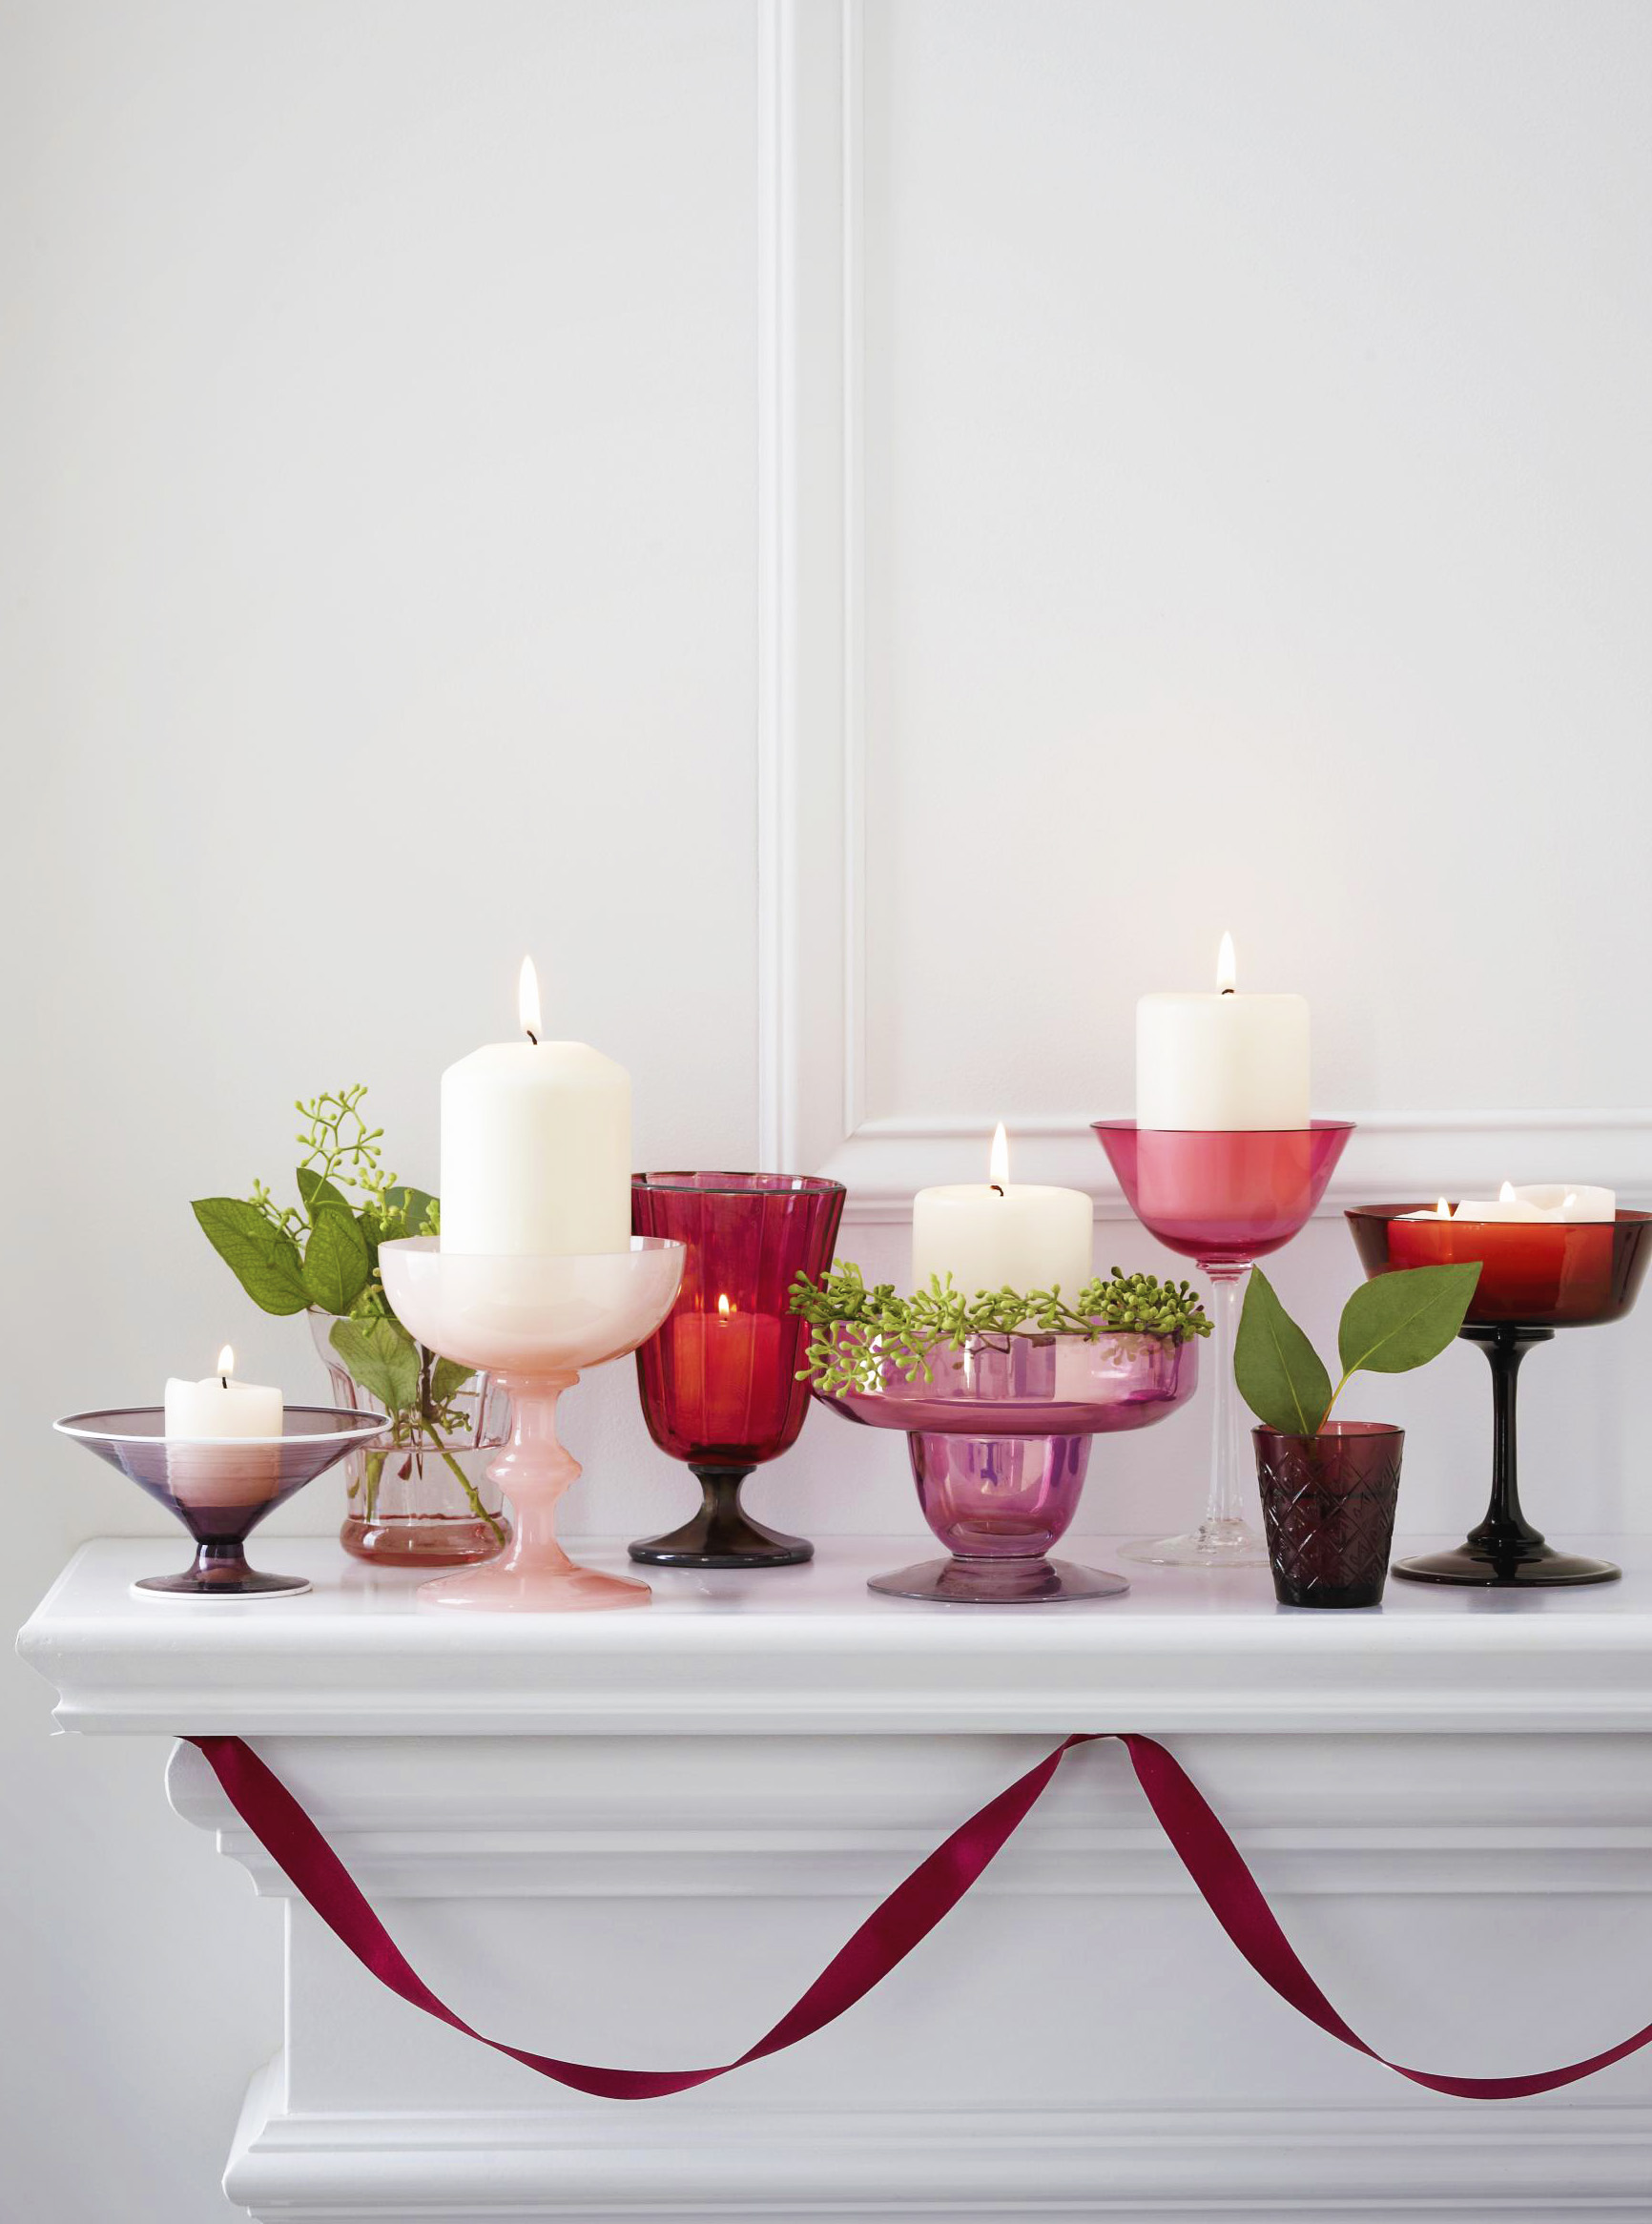 Candles and glass